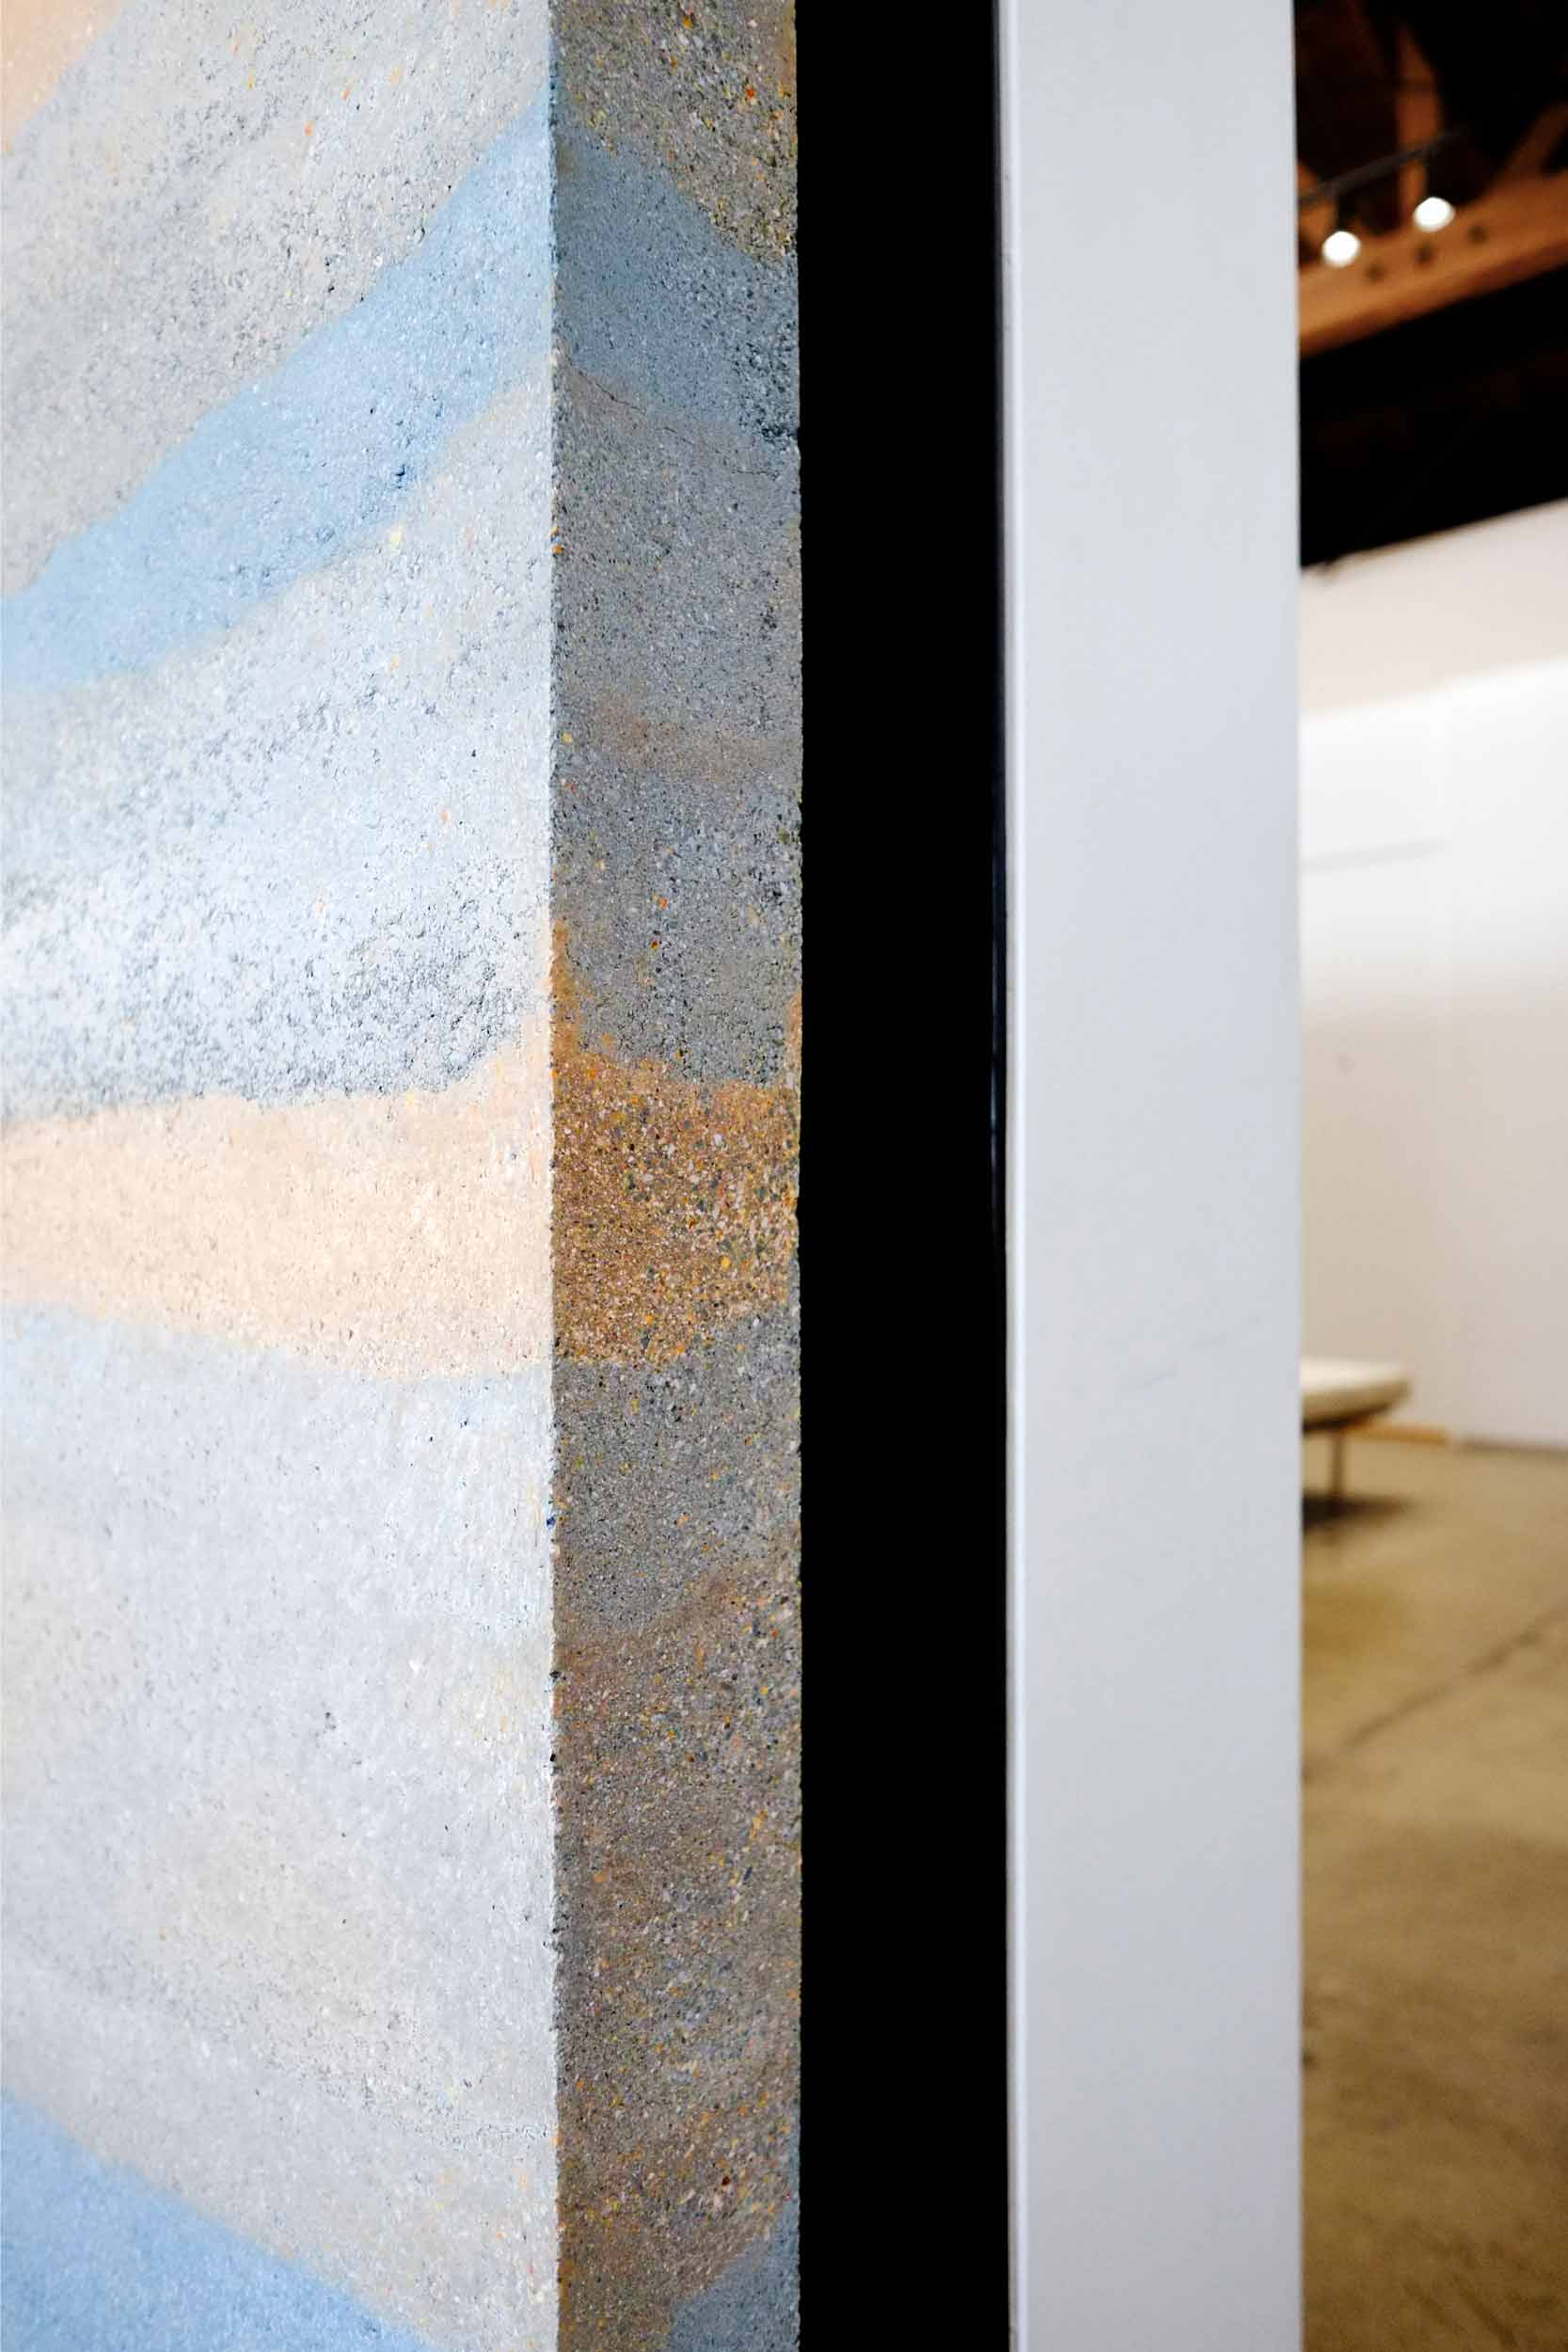 """Pre-cast thin interior rammed earth panel at the Reformation store in Los Angeles. After curing in the shop for a month, each of the panels was cut in half to facilitate transport, then re-assembled in the store and mounted onto a square tube steel frame bolted to footings beneath the original concrete slab floor. The """"end grain"""" of the cut panels reveals the small stones and gravel that are a component of the formulations that give each layer its strength and color. Image © Jesse Gillan"""